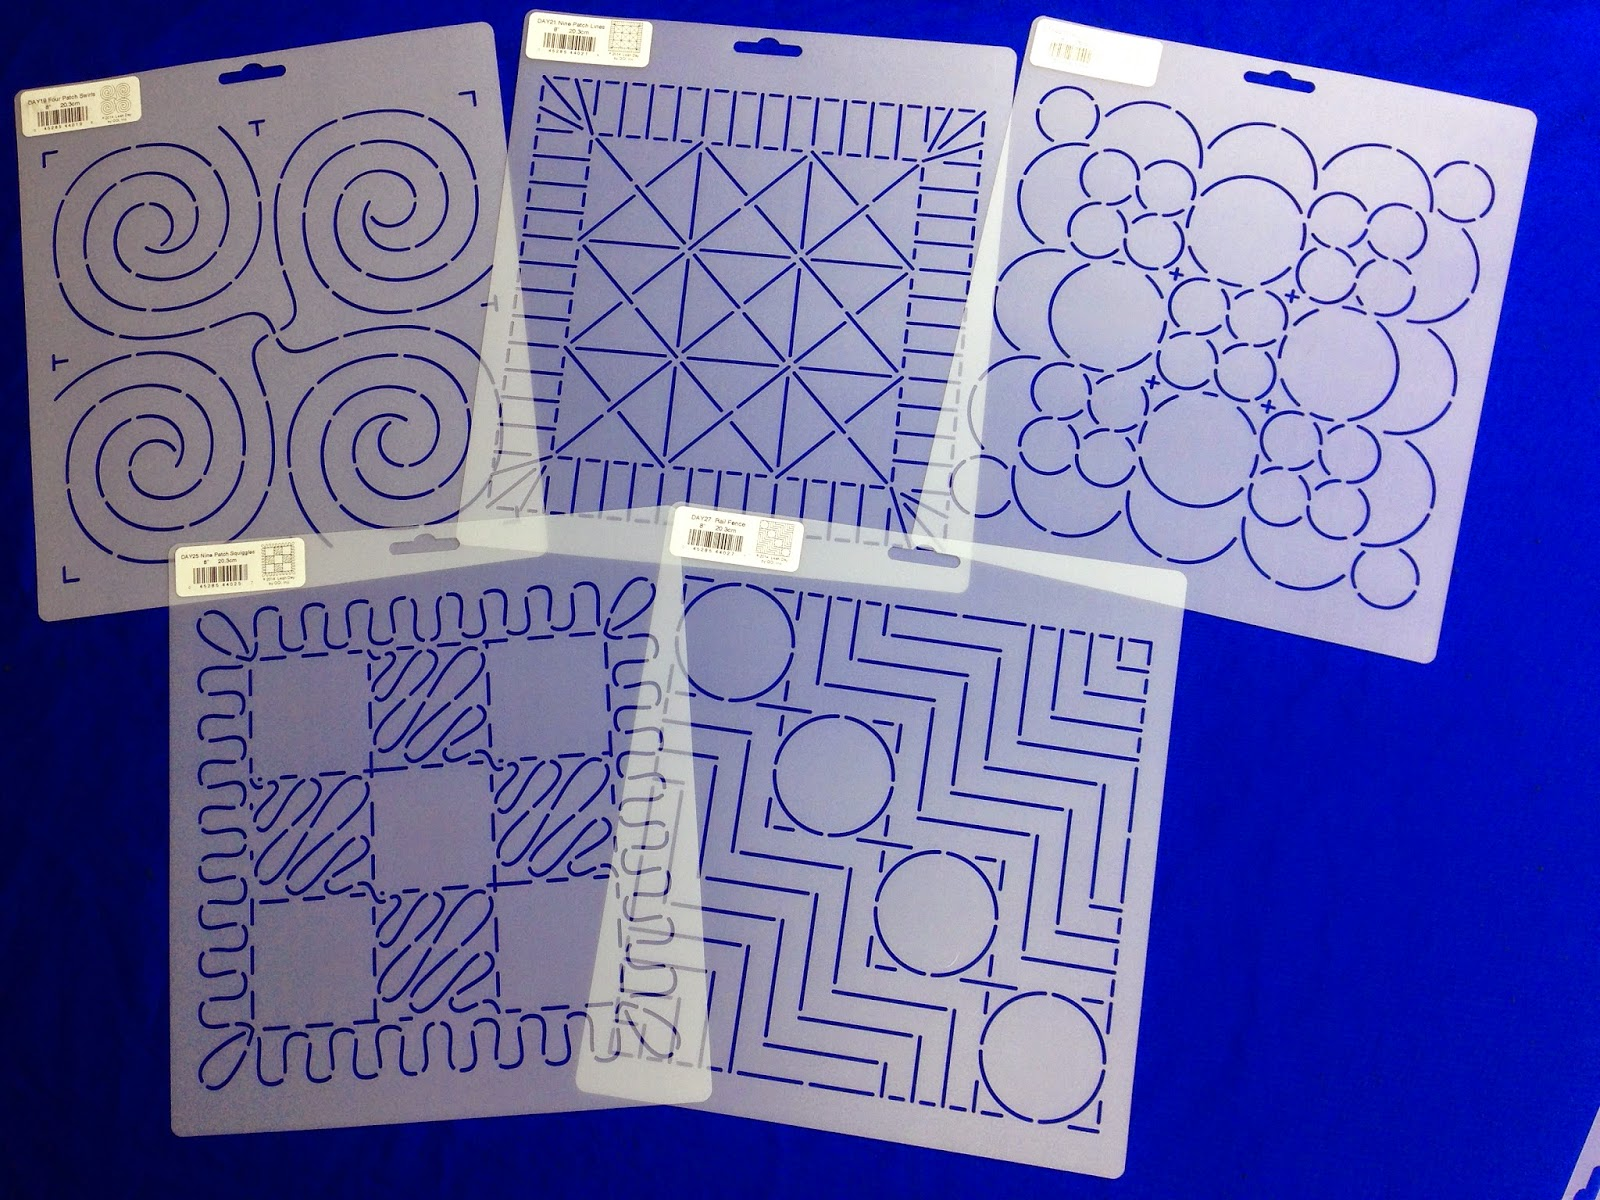 Free Motion Quilting Patterns For Blocks : The Free Motion Quilting Project: Building Block Stencils!